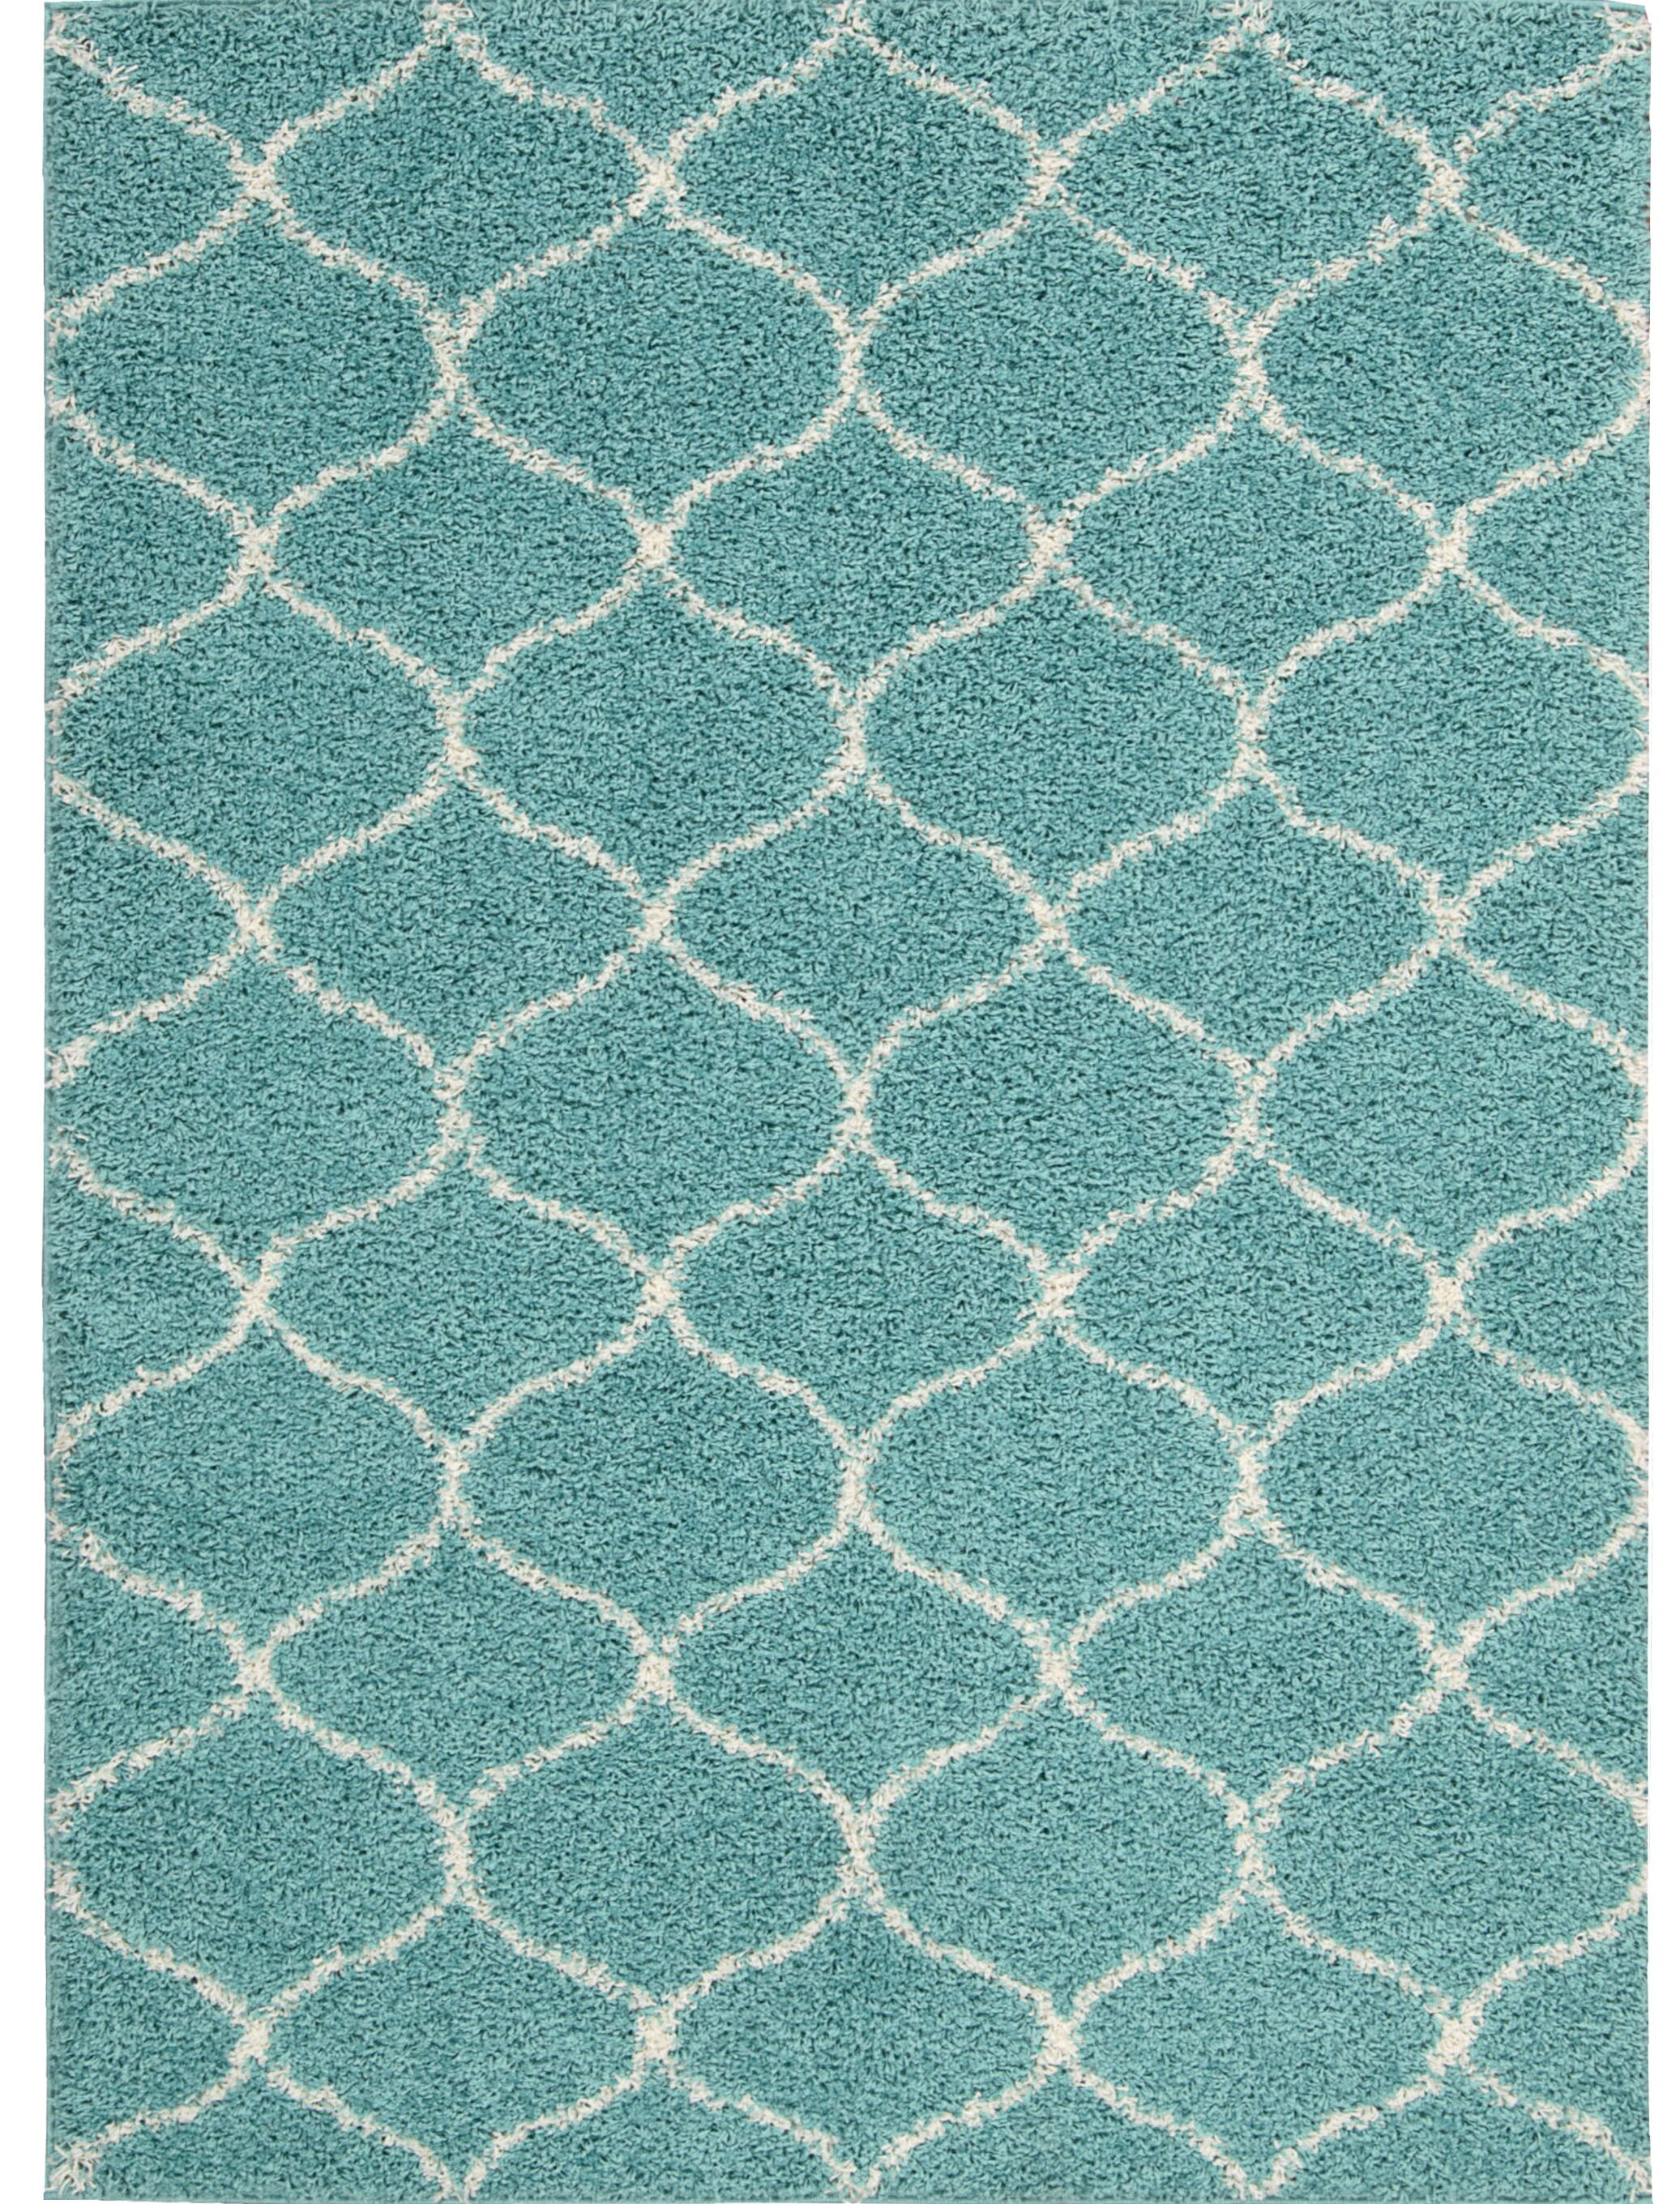 Addison Teal Area Rug Rug Size: Rectangle 5' x 7'